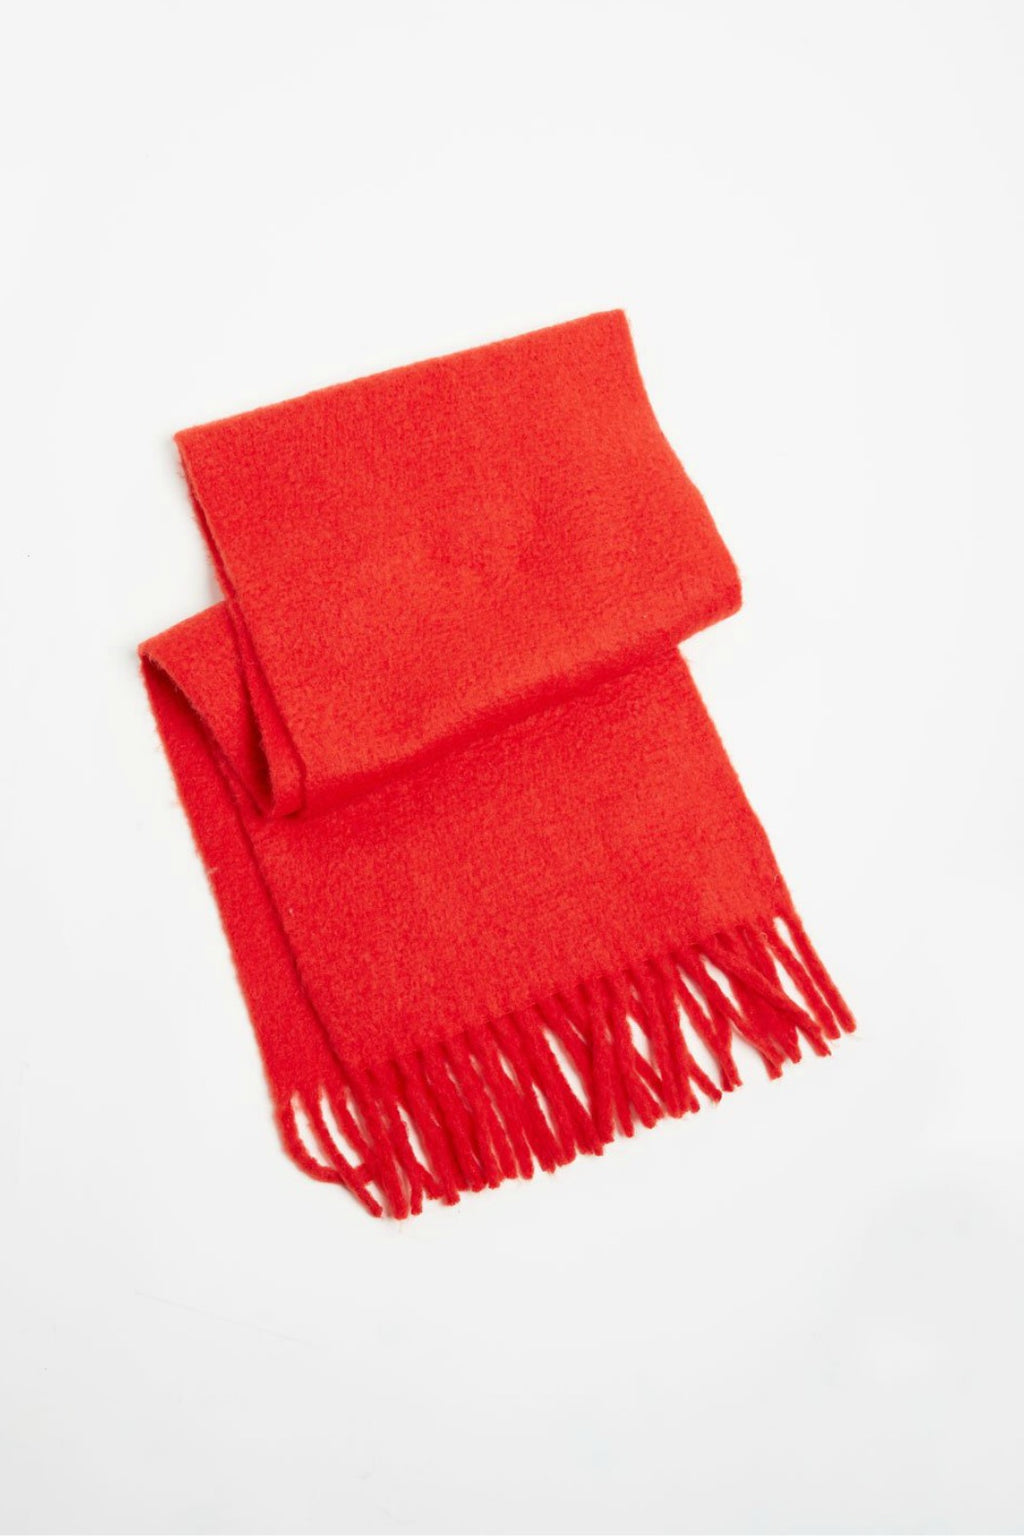 Look Vivid Colored Grunge Scarf in Red